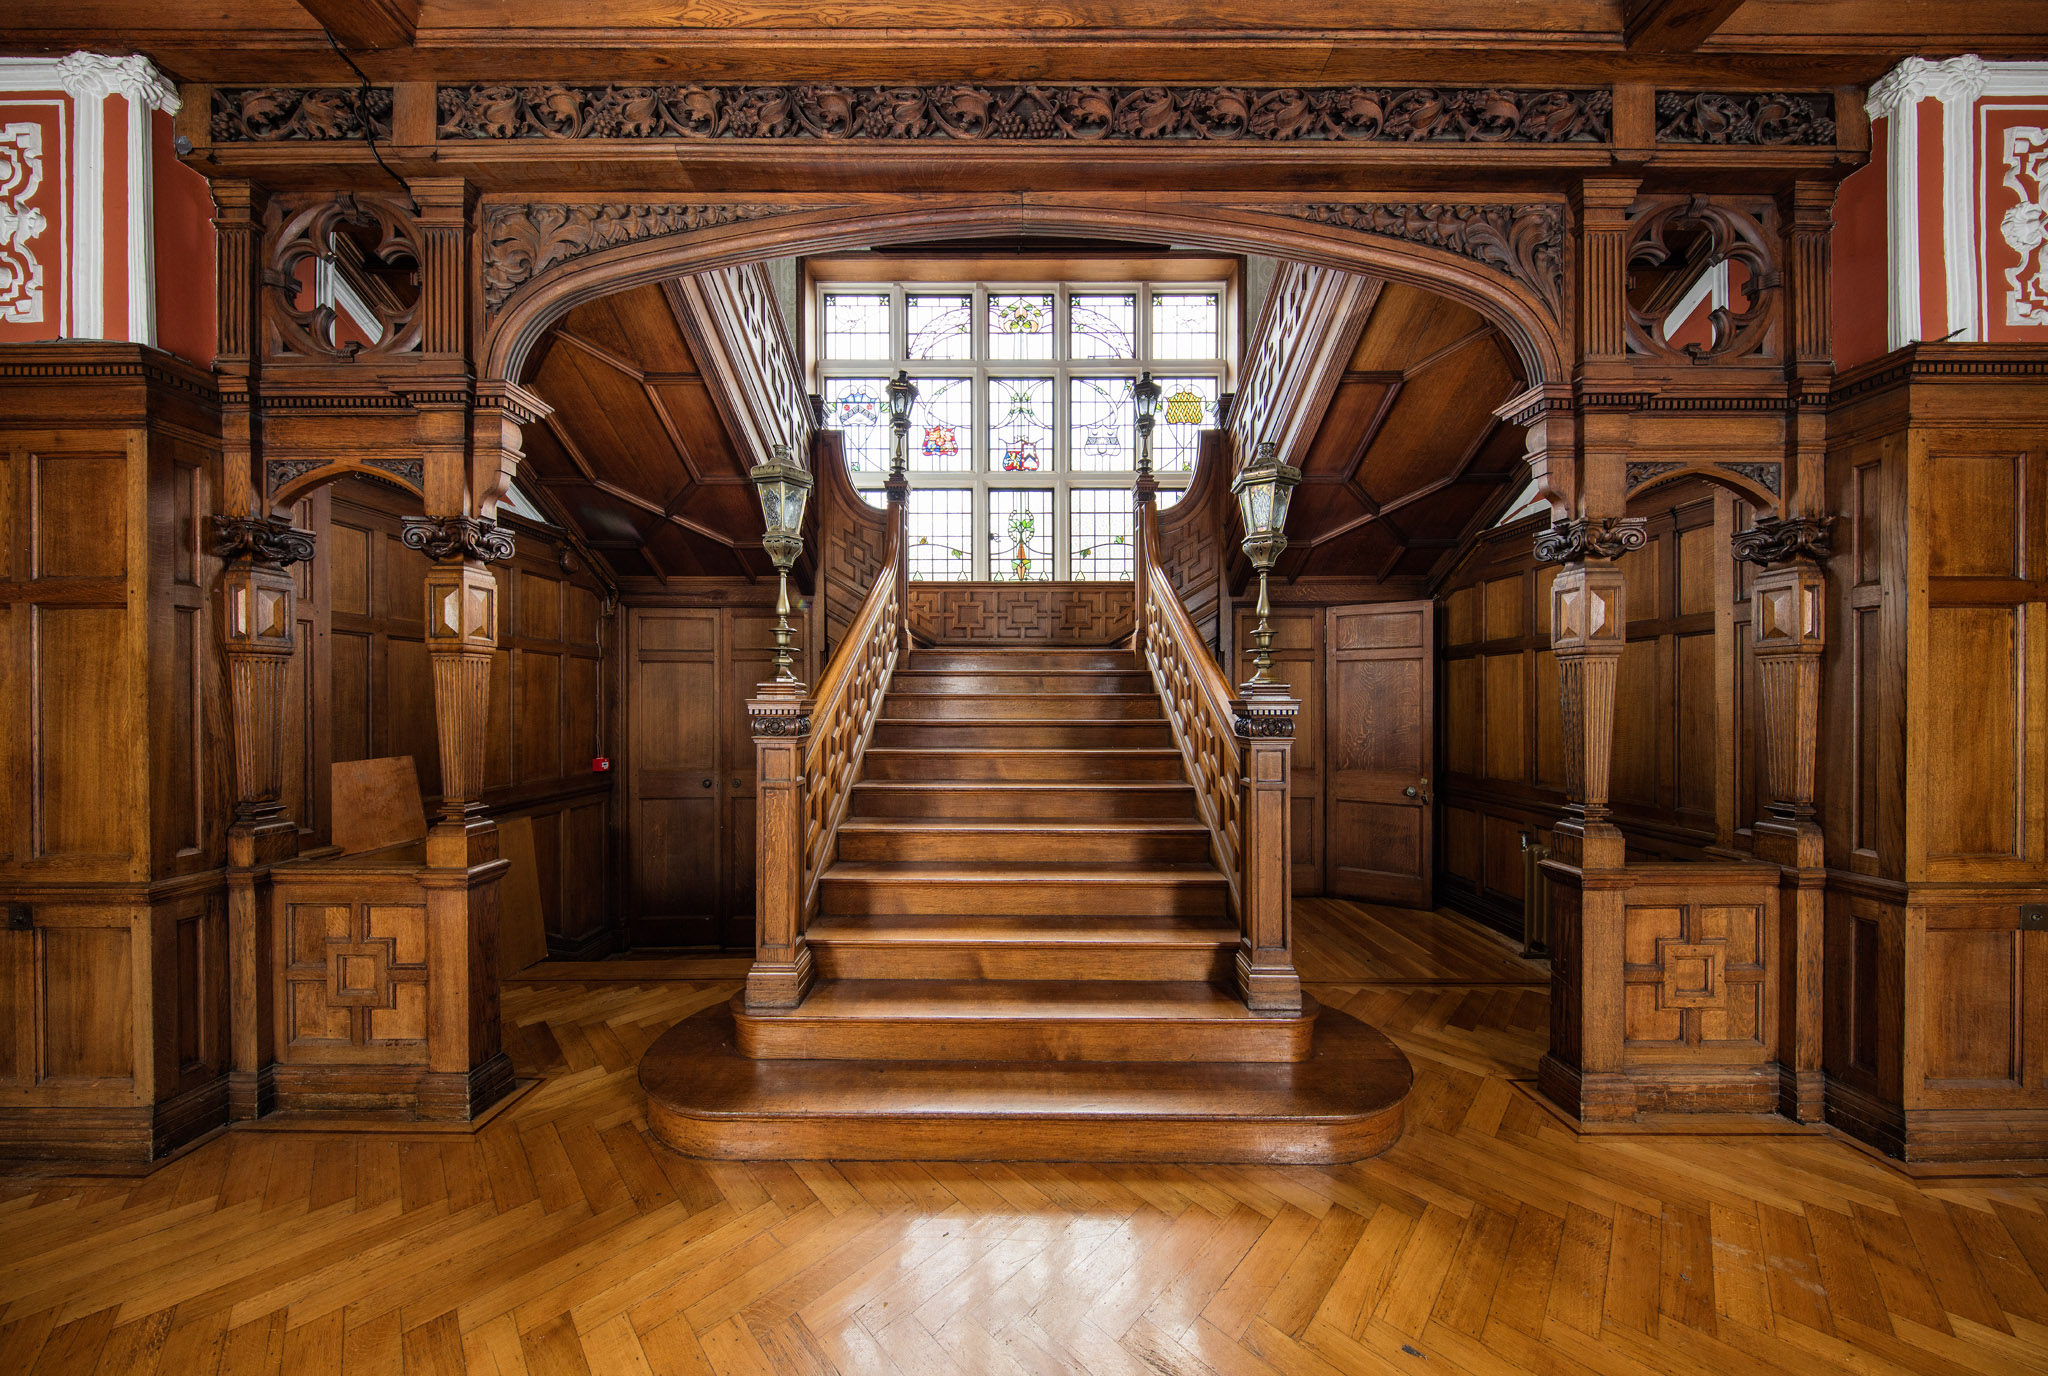 Architectural and Interiors Photography and Video Edwardian